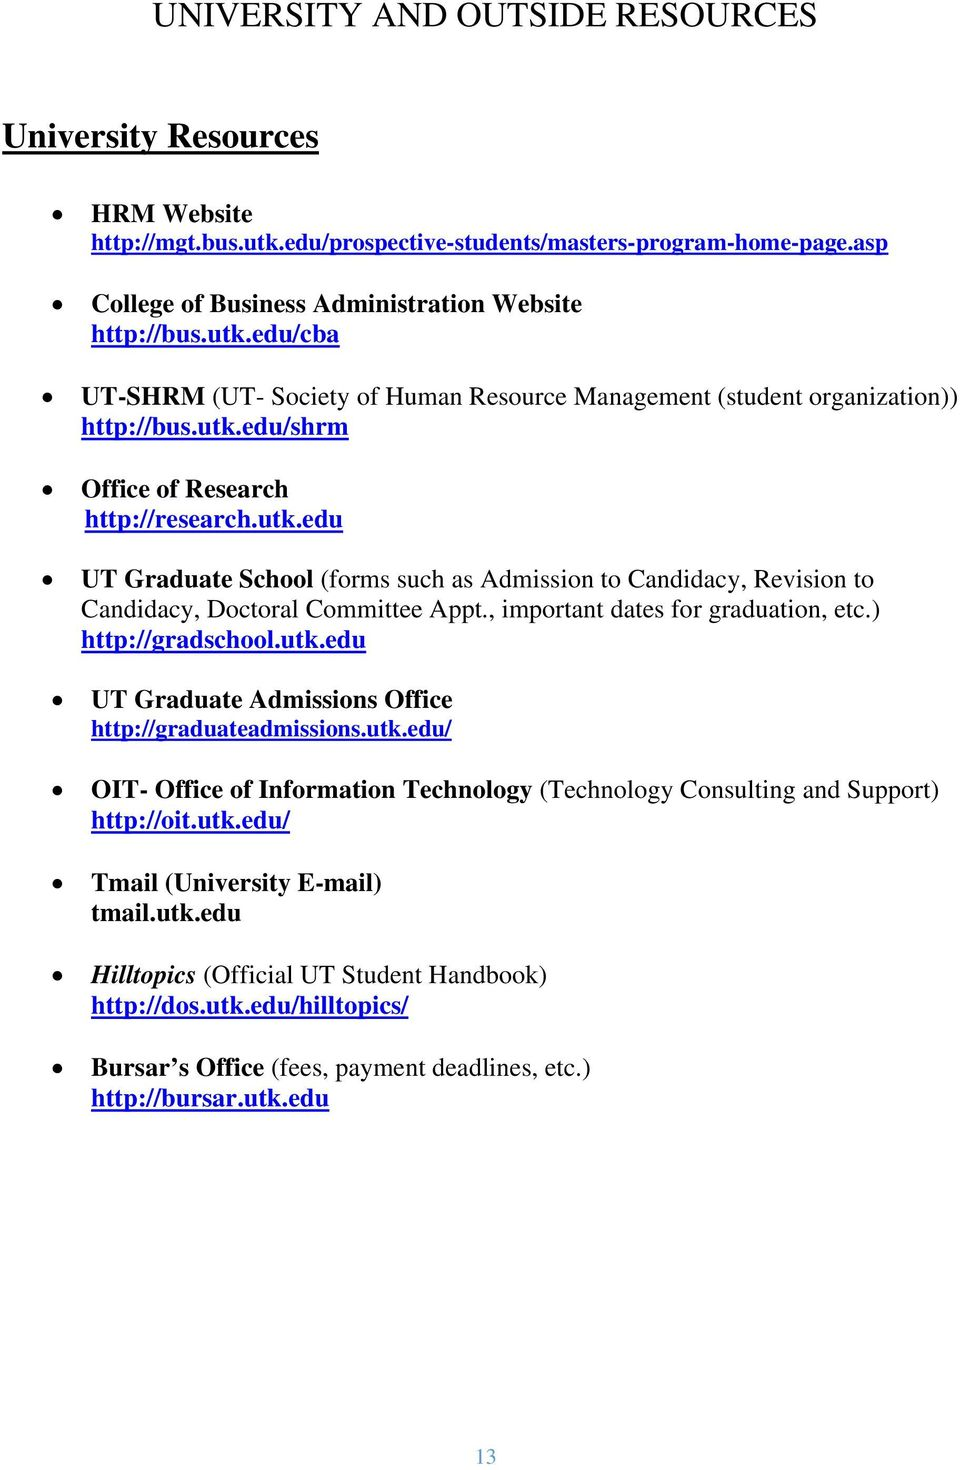 ) http://gradschool.utk.edu UT Graduate Admissions Office http://graduateadmissions.utk.edu/ OIT- Office of Information Technology (Technology Consulting and Support) http://oit.utk.edu/ Tmail (University E-mail) tmail.